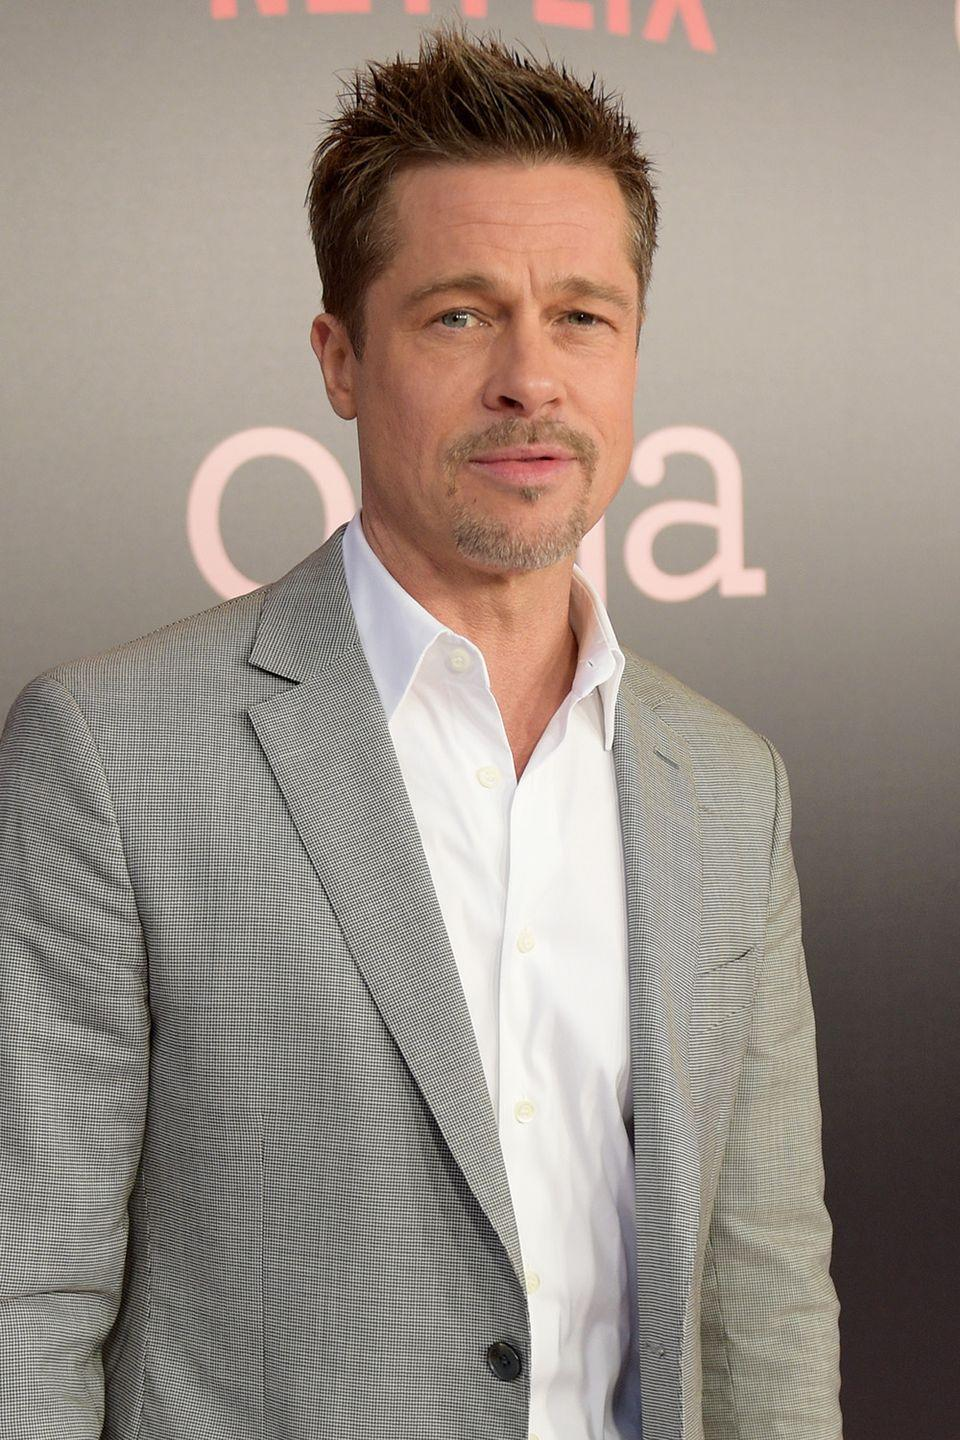 """<p>The actor opened up most recently in his <a href=""""http://www.gq.com/story/brad-pitt-gq-style-cover-story"""" rel=""""nofollow noopener"""" target=""""_blank"""" data-ylk=""""slk:GQ Style"""" class=""""link rapid-noclick-resp"""">GQ Style</a> cover story this year about the struggles he has faced with alcohol addiction in the past. When asked about his experience going cold turkey, he said simply: 'I didn't want to live that way any more.'</p>"""